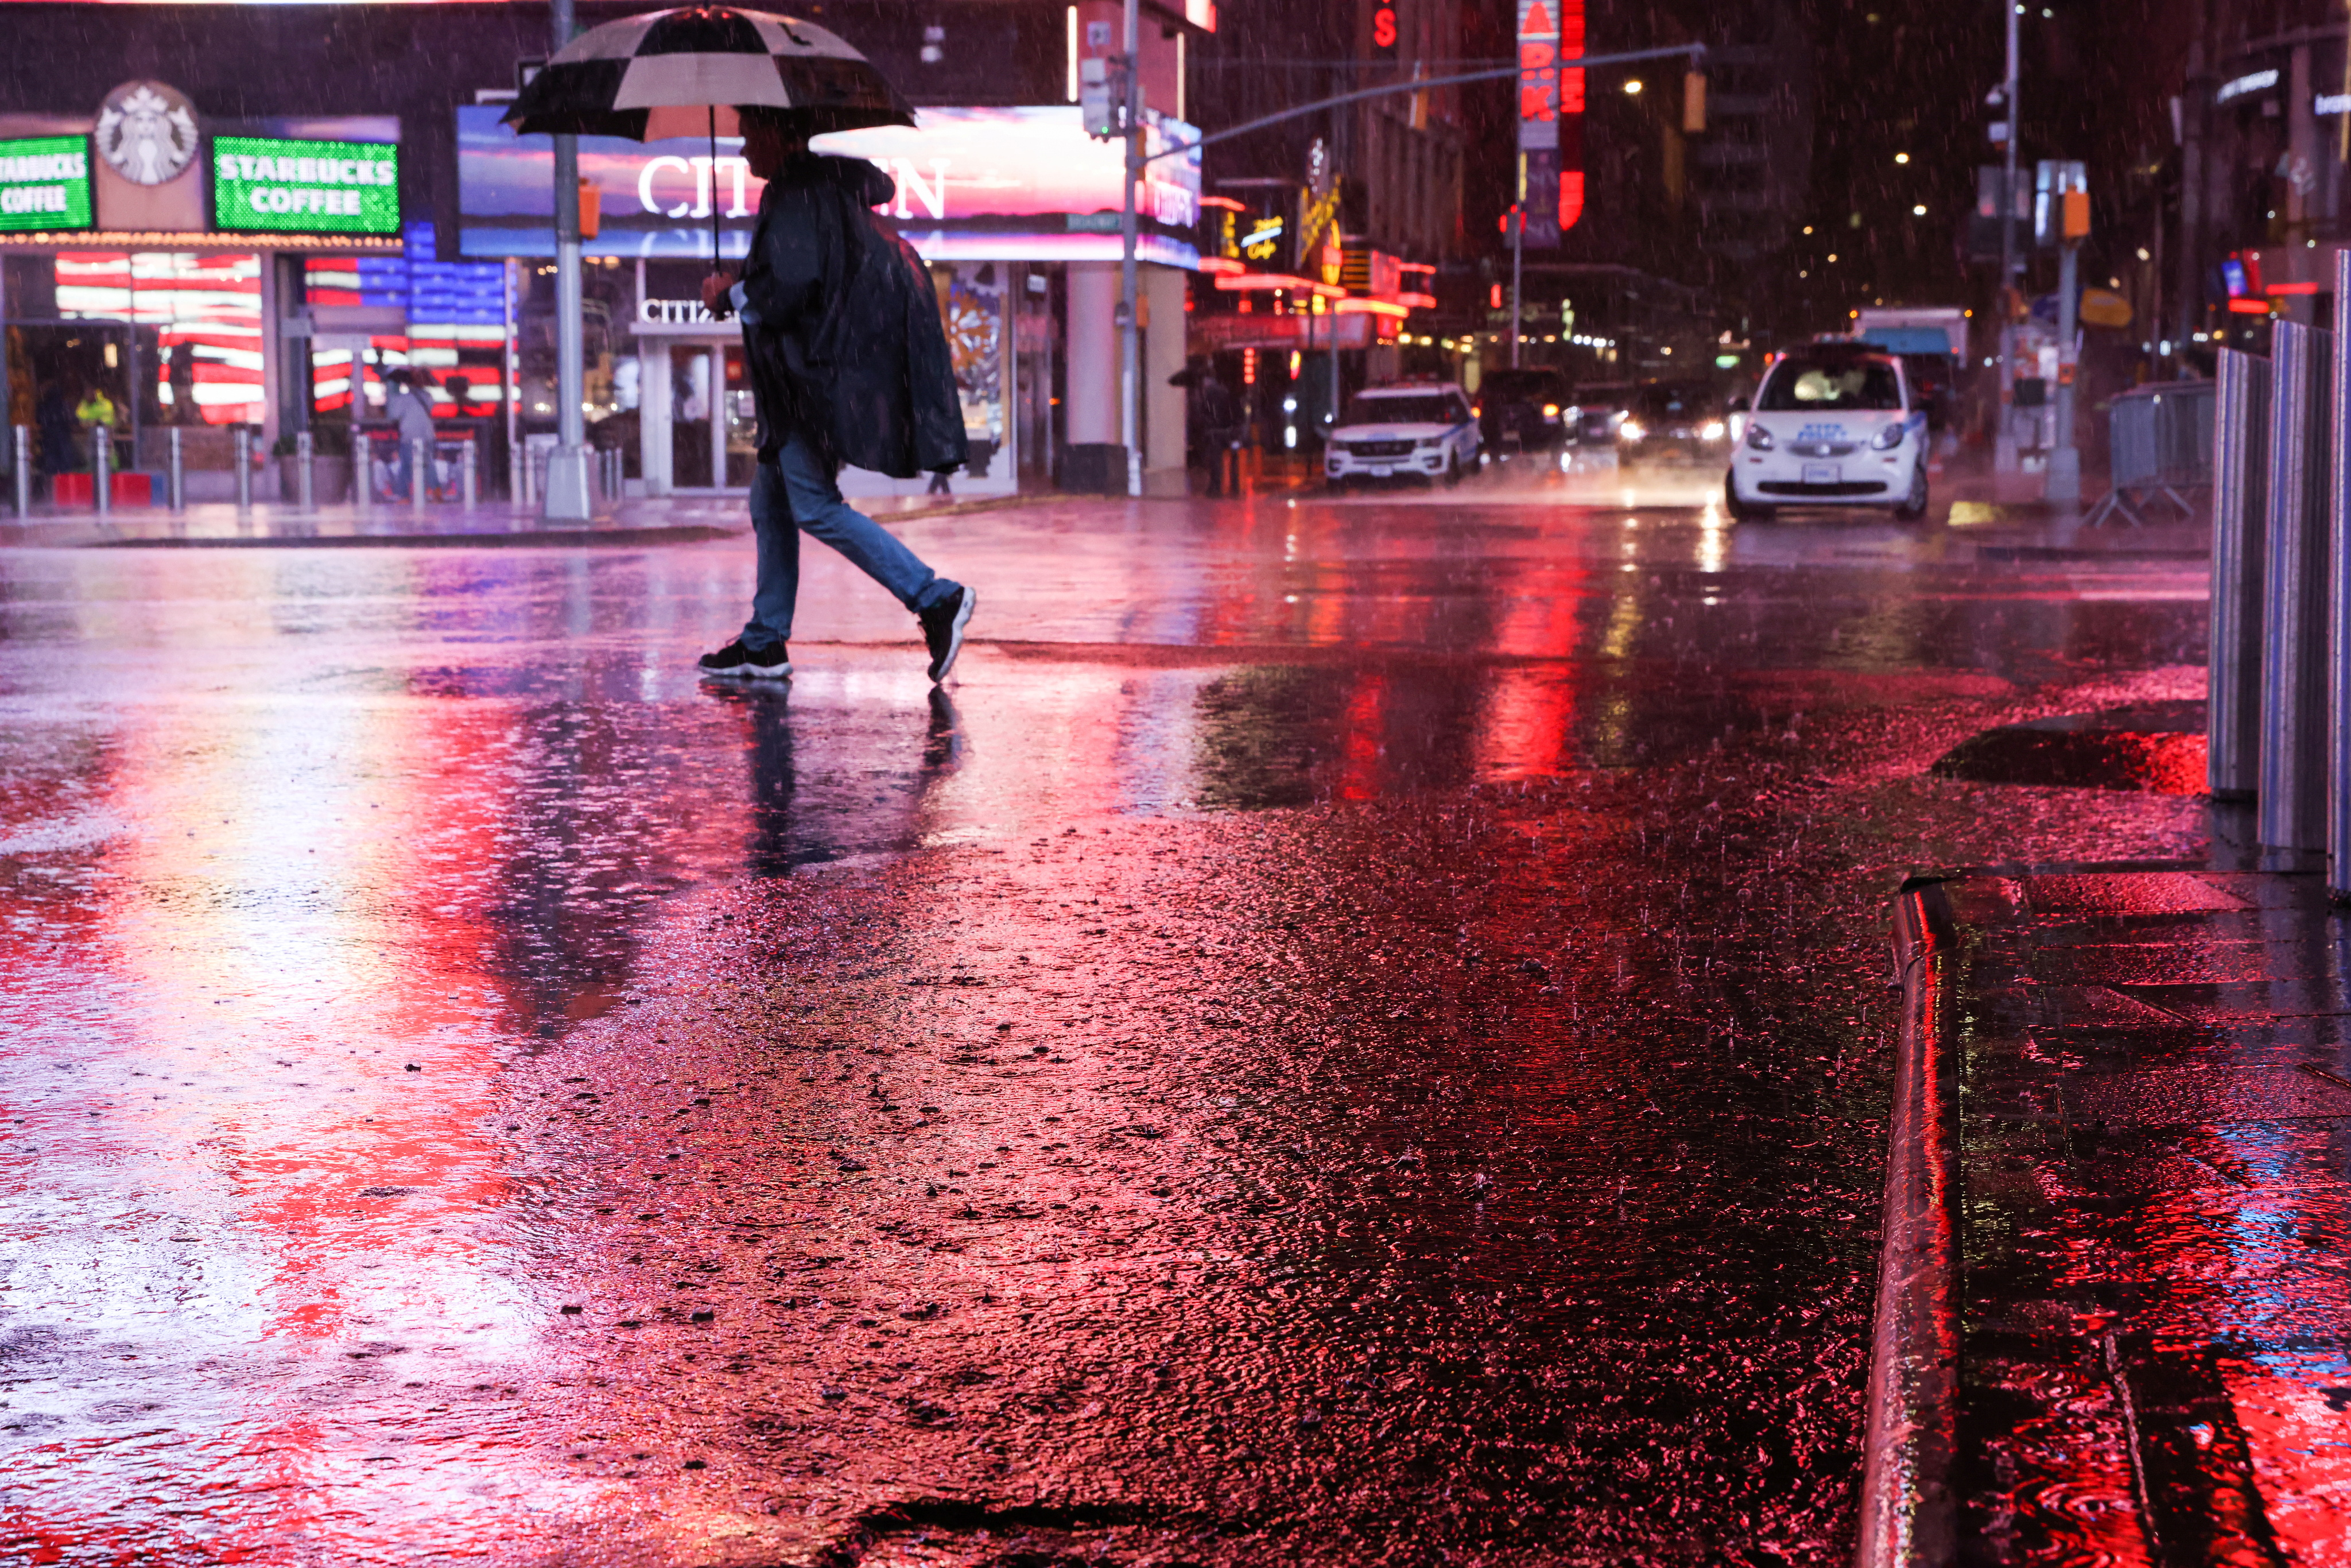 Powerful Nor'easter Drenches East Coast With Hurricane-Force Winds and Flooding as Bomb Cyclone Lashes West Coast